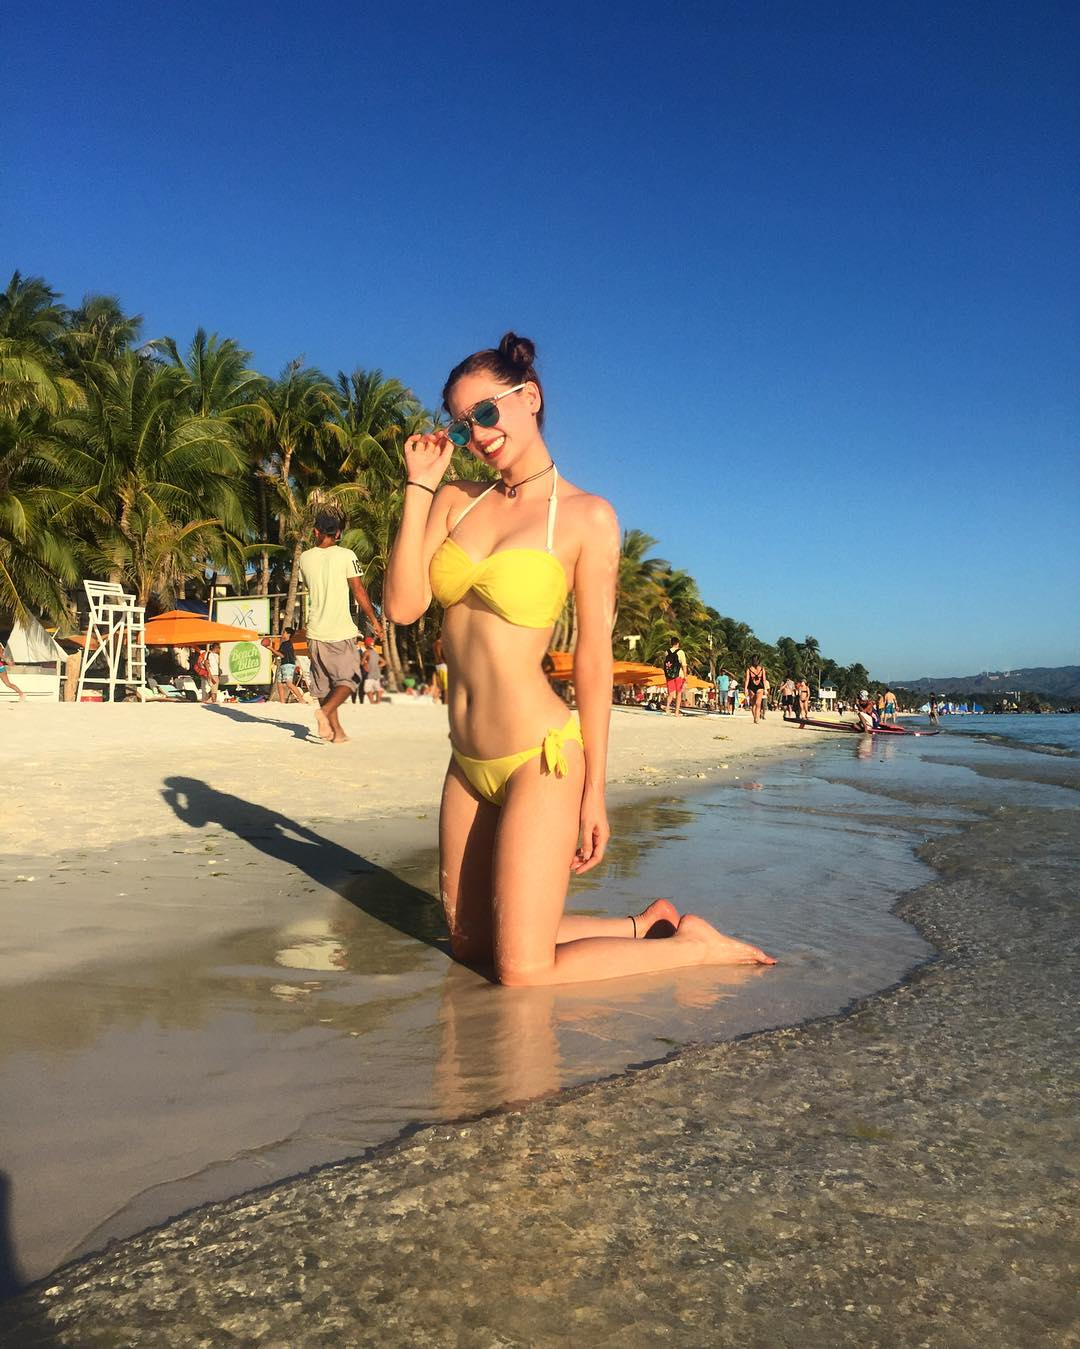 16 bikini photos of Arci that's so perfectly sexy you'll almost hate her